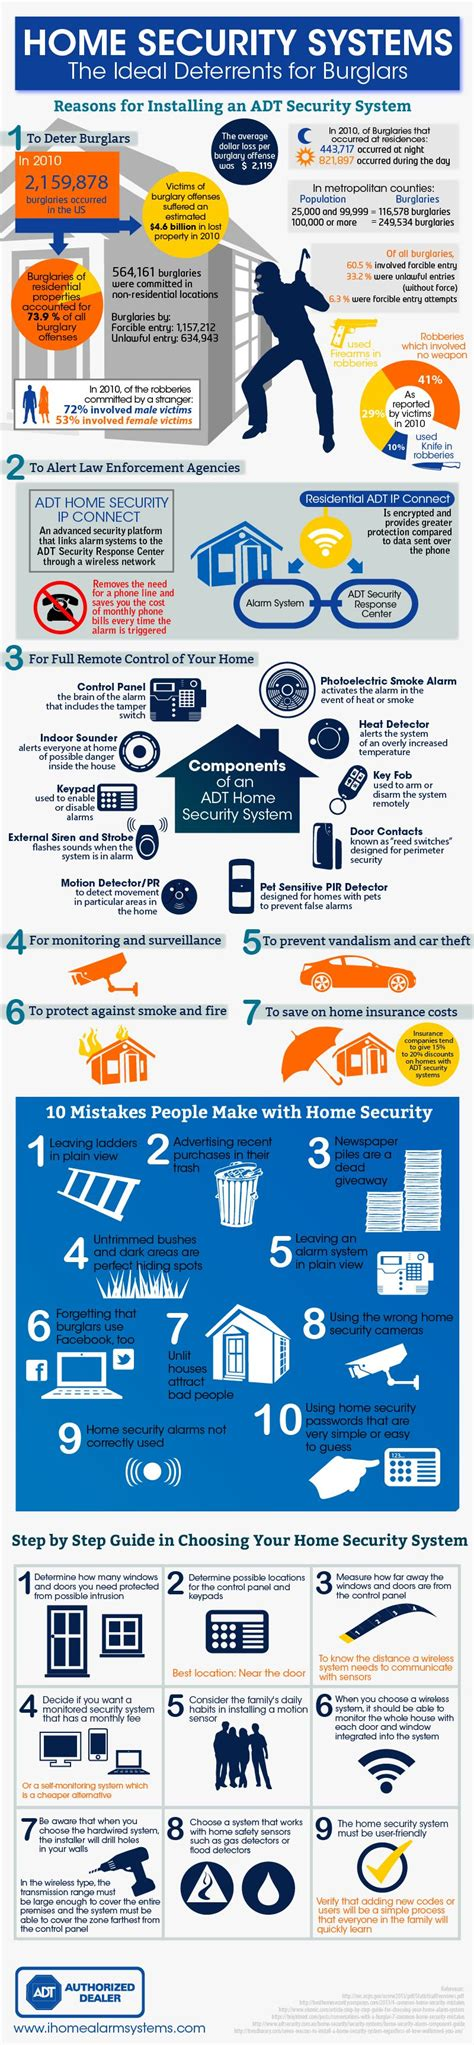 abc heating and cooling baltimore home security systems infographic alarms home